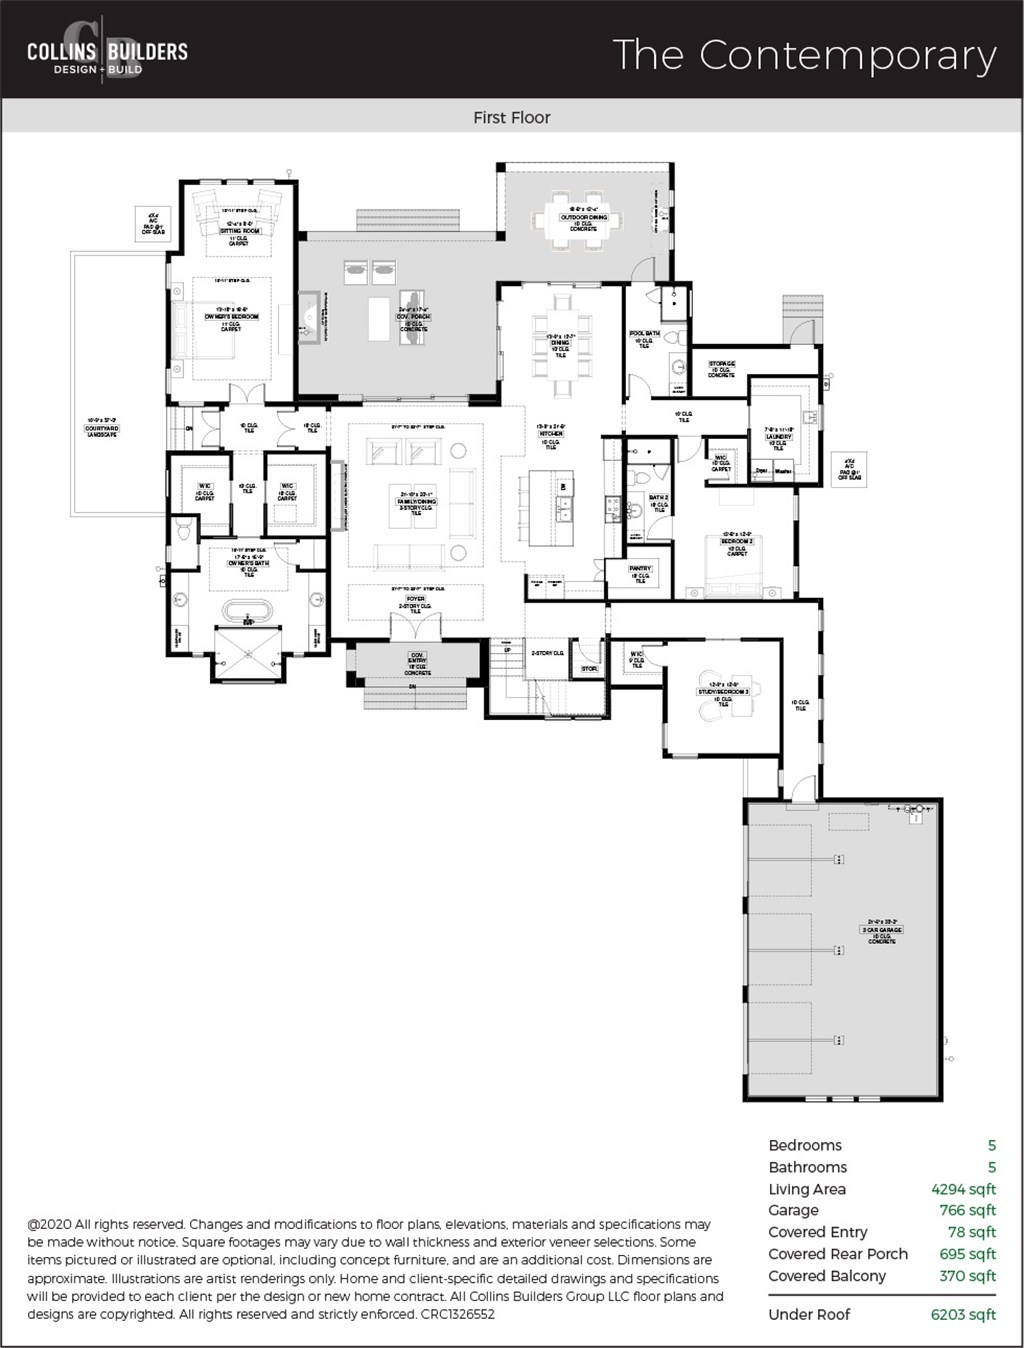 Floor Plan The Contemporary First Floor